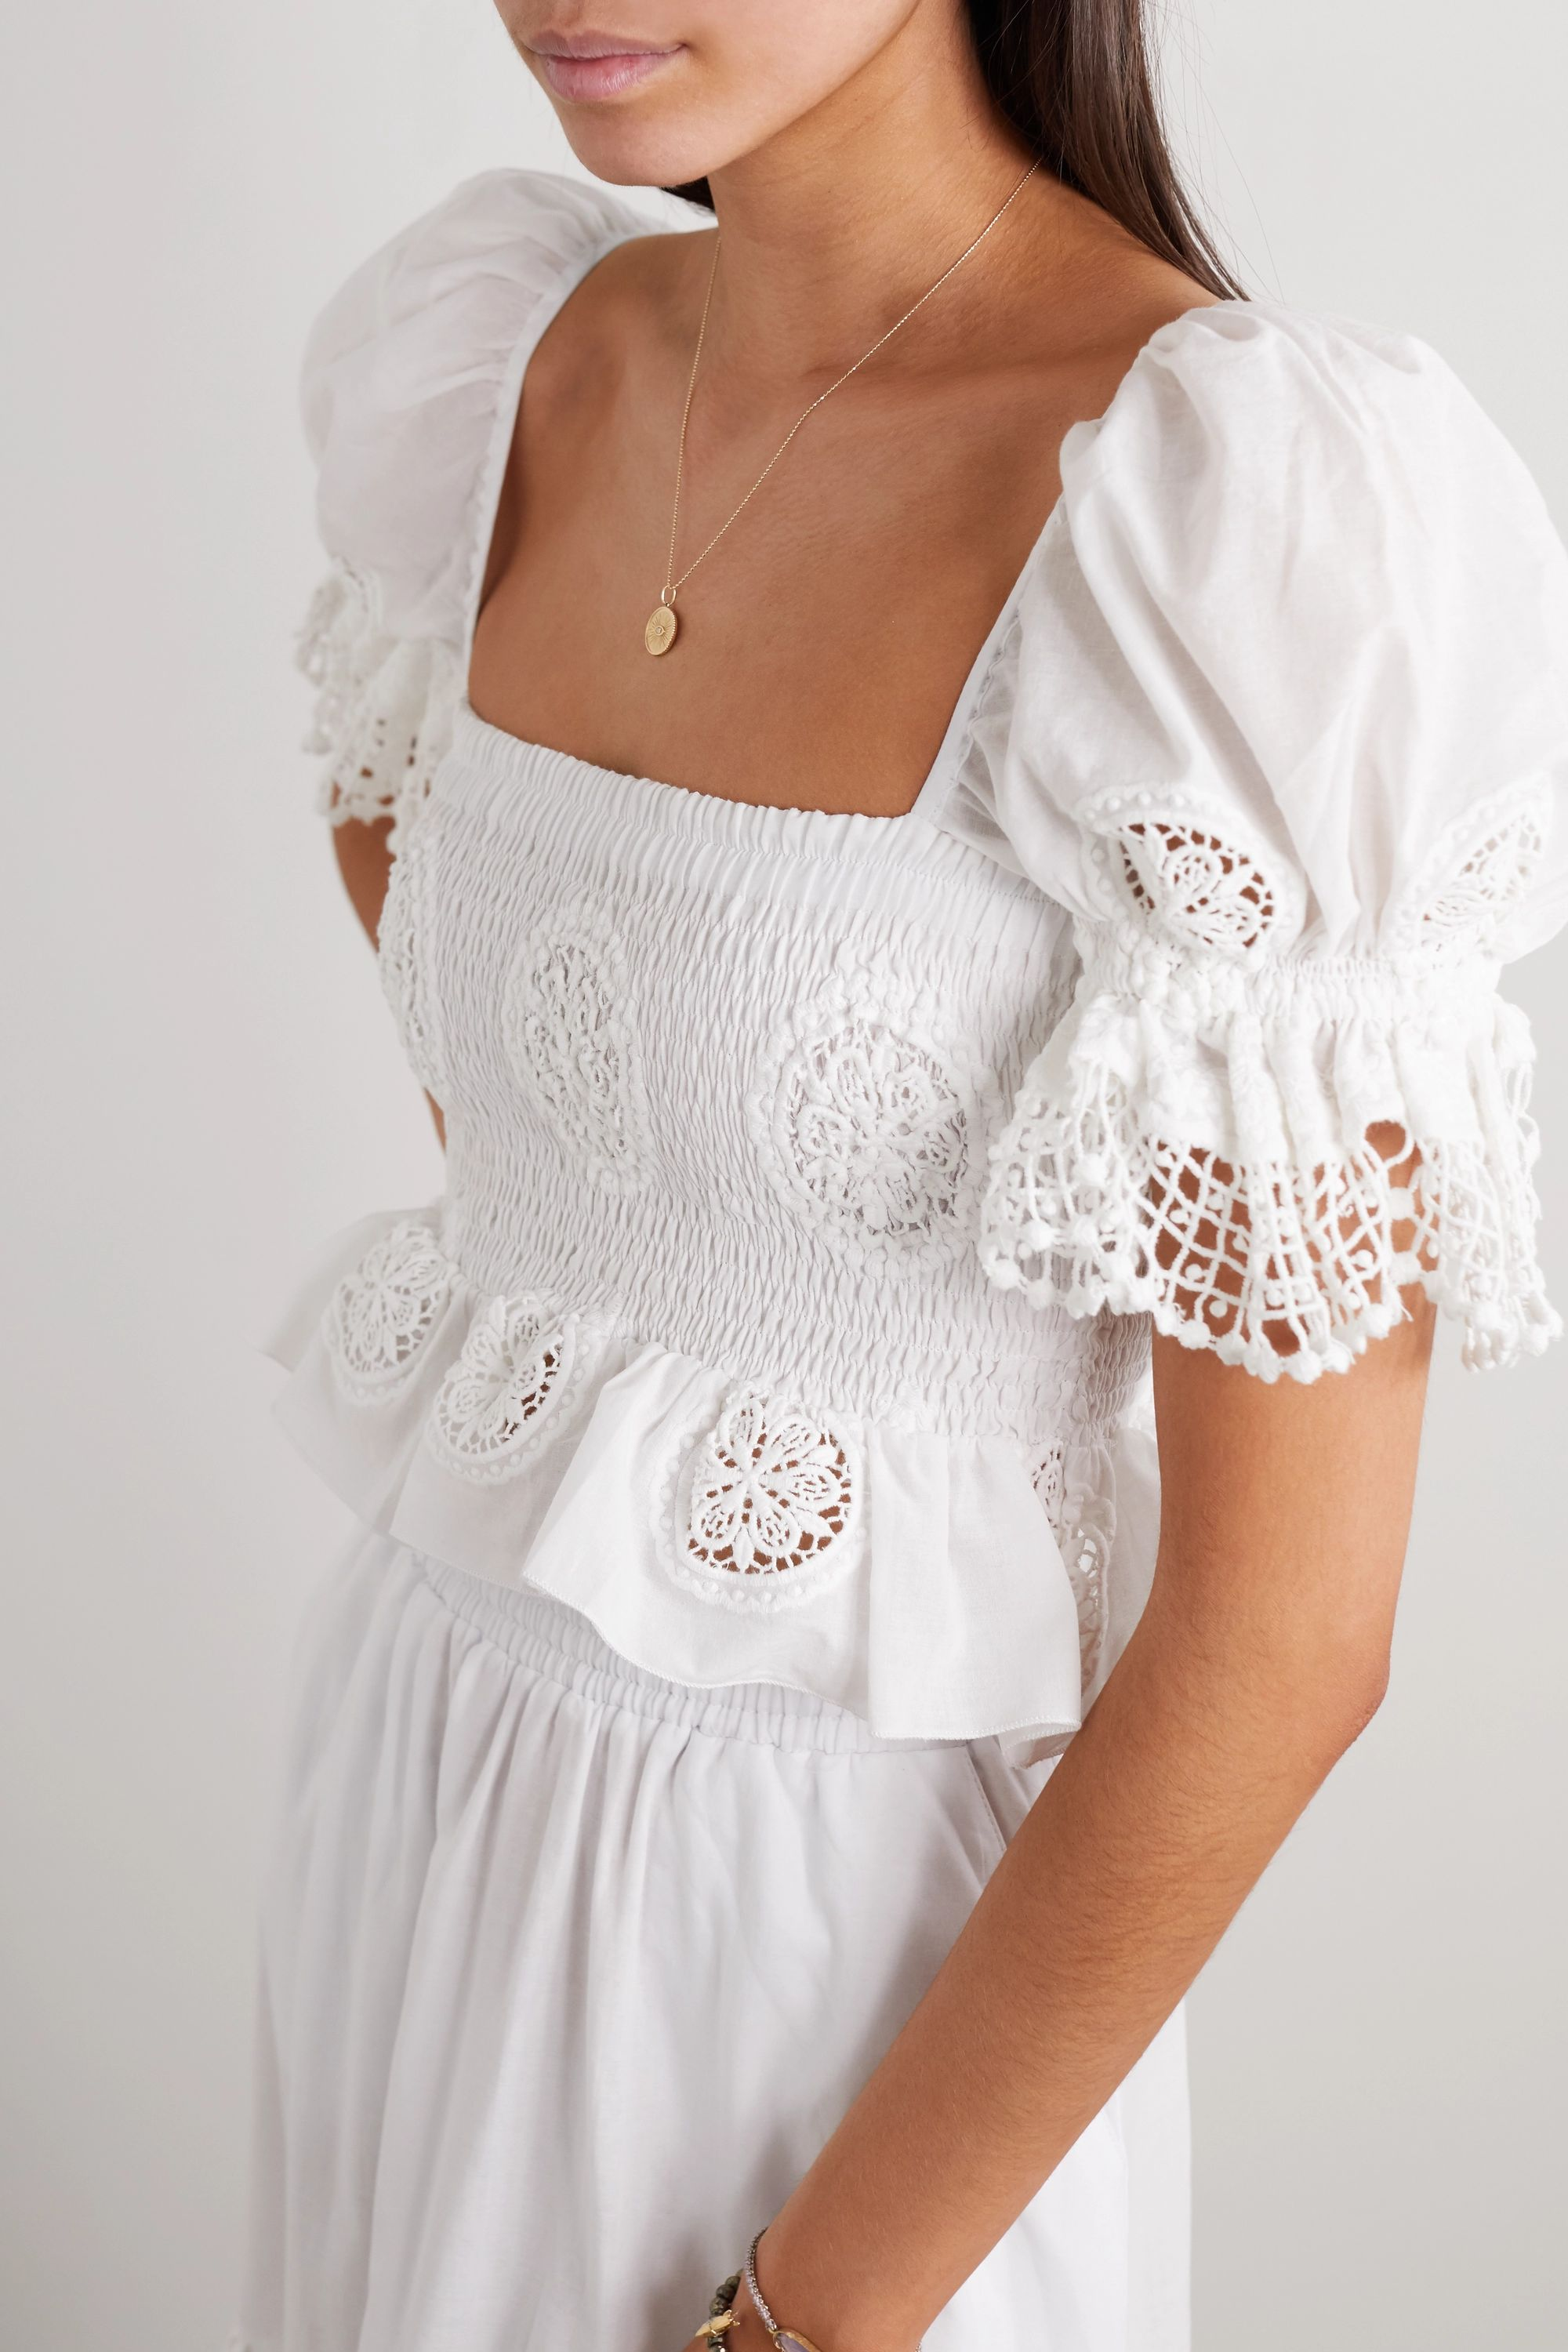 Charo Ruiz Brigette cropped crocheted lace-paneled cotton-voile top